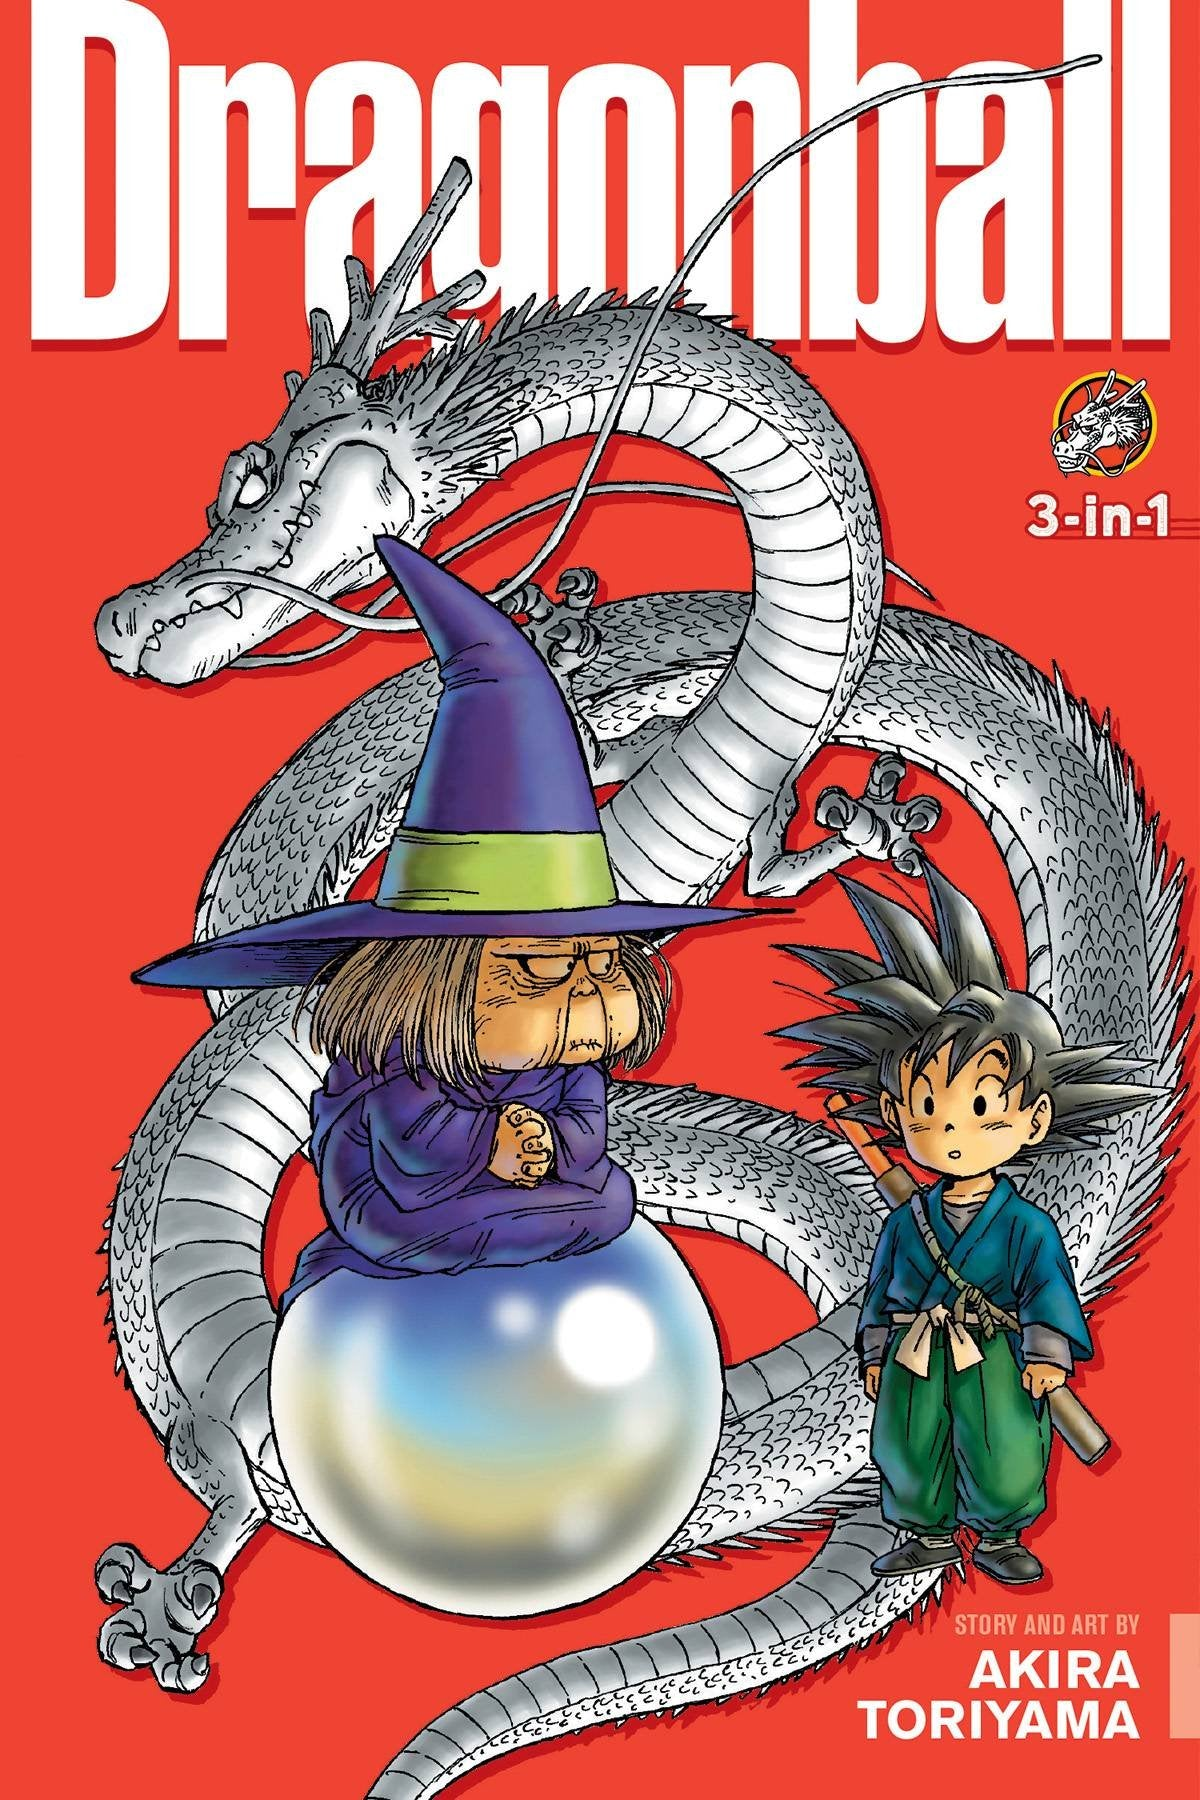 Dragon Ball 3-in-1 Edition Volume 03